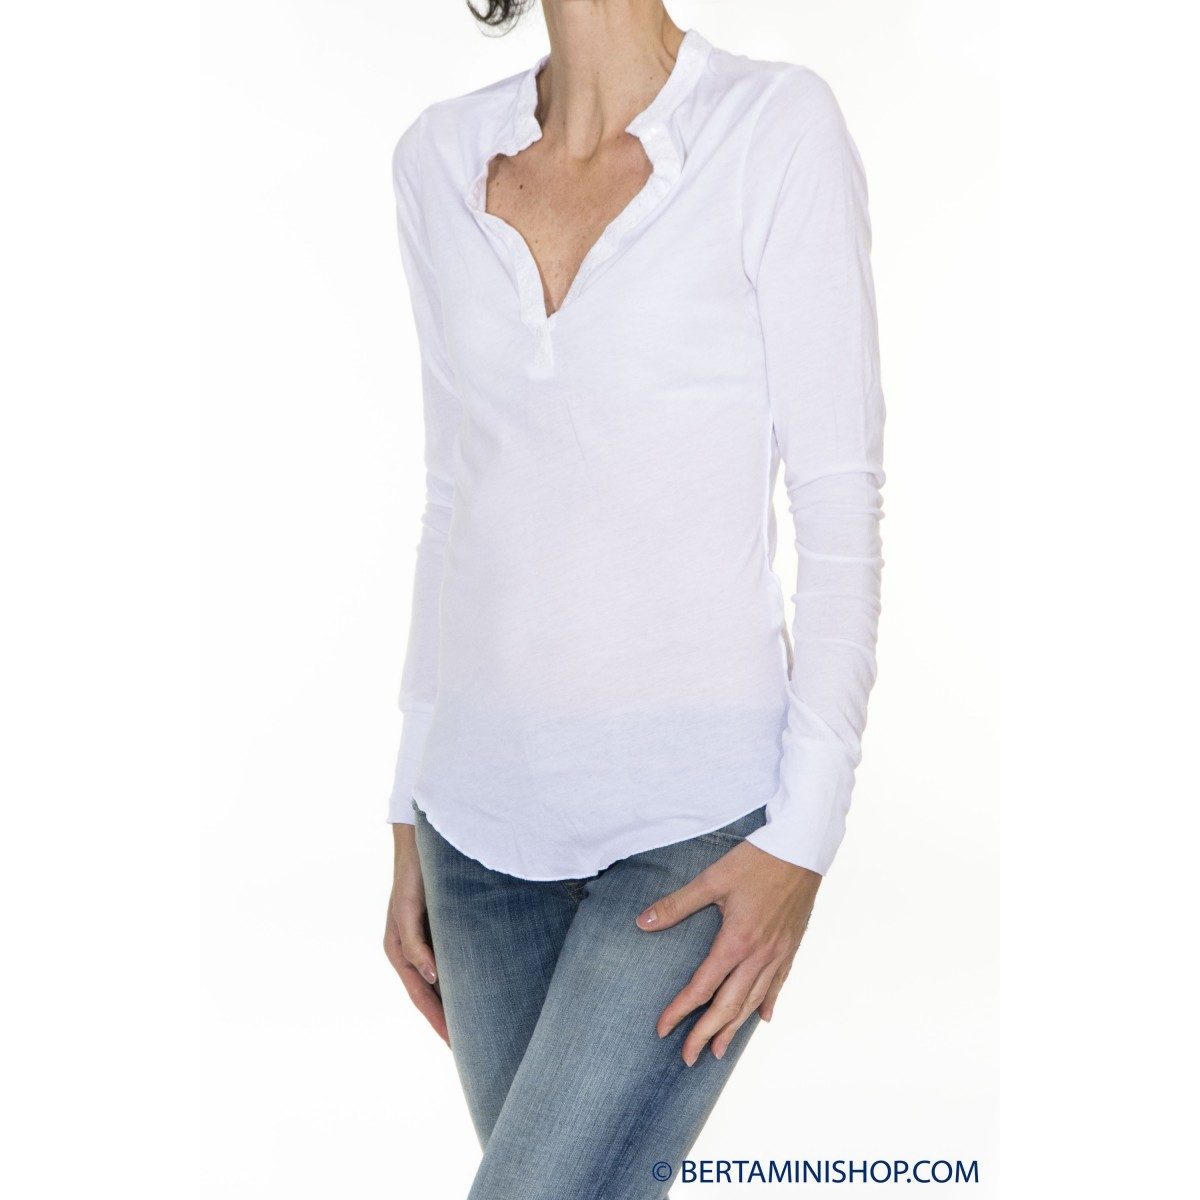 T-Shirt Better Rich Damen - F33 2000 - bianco